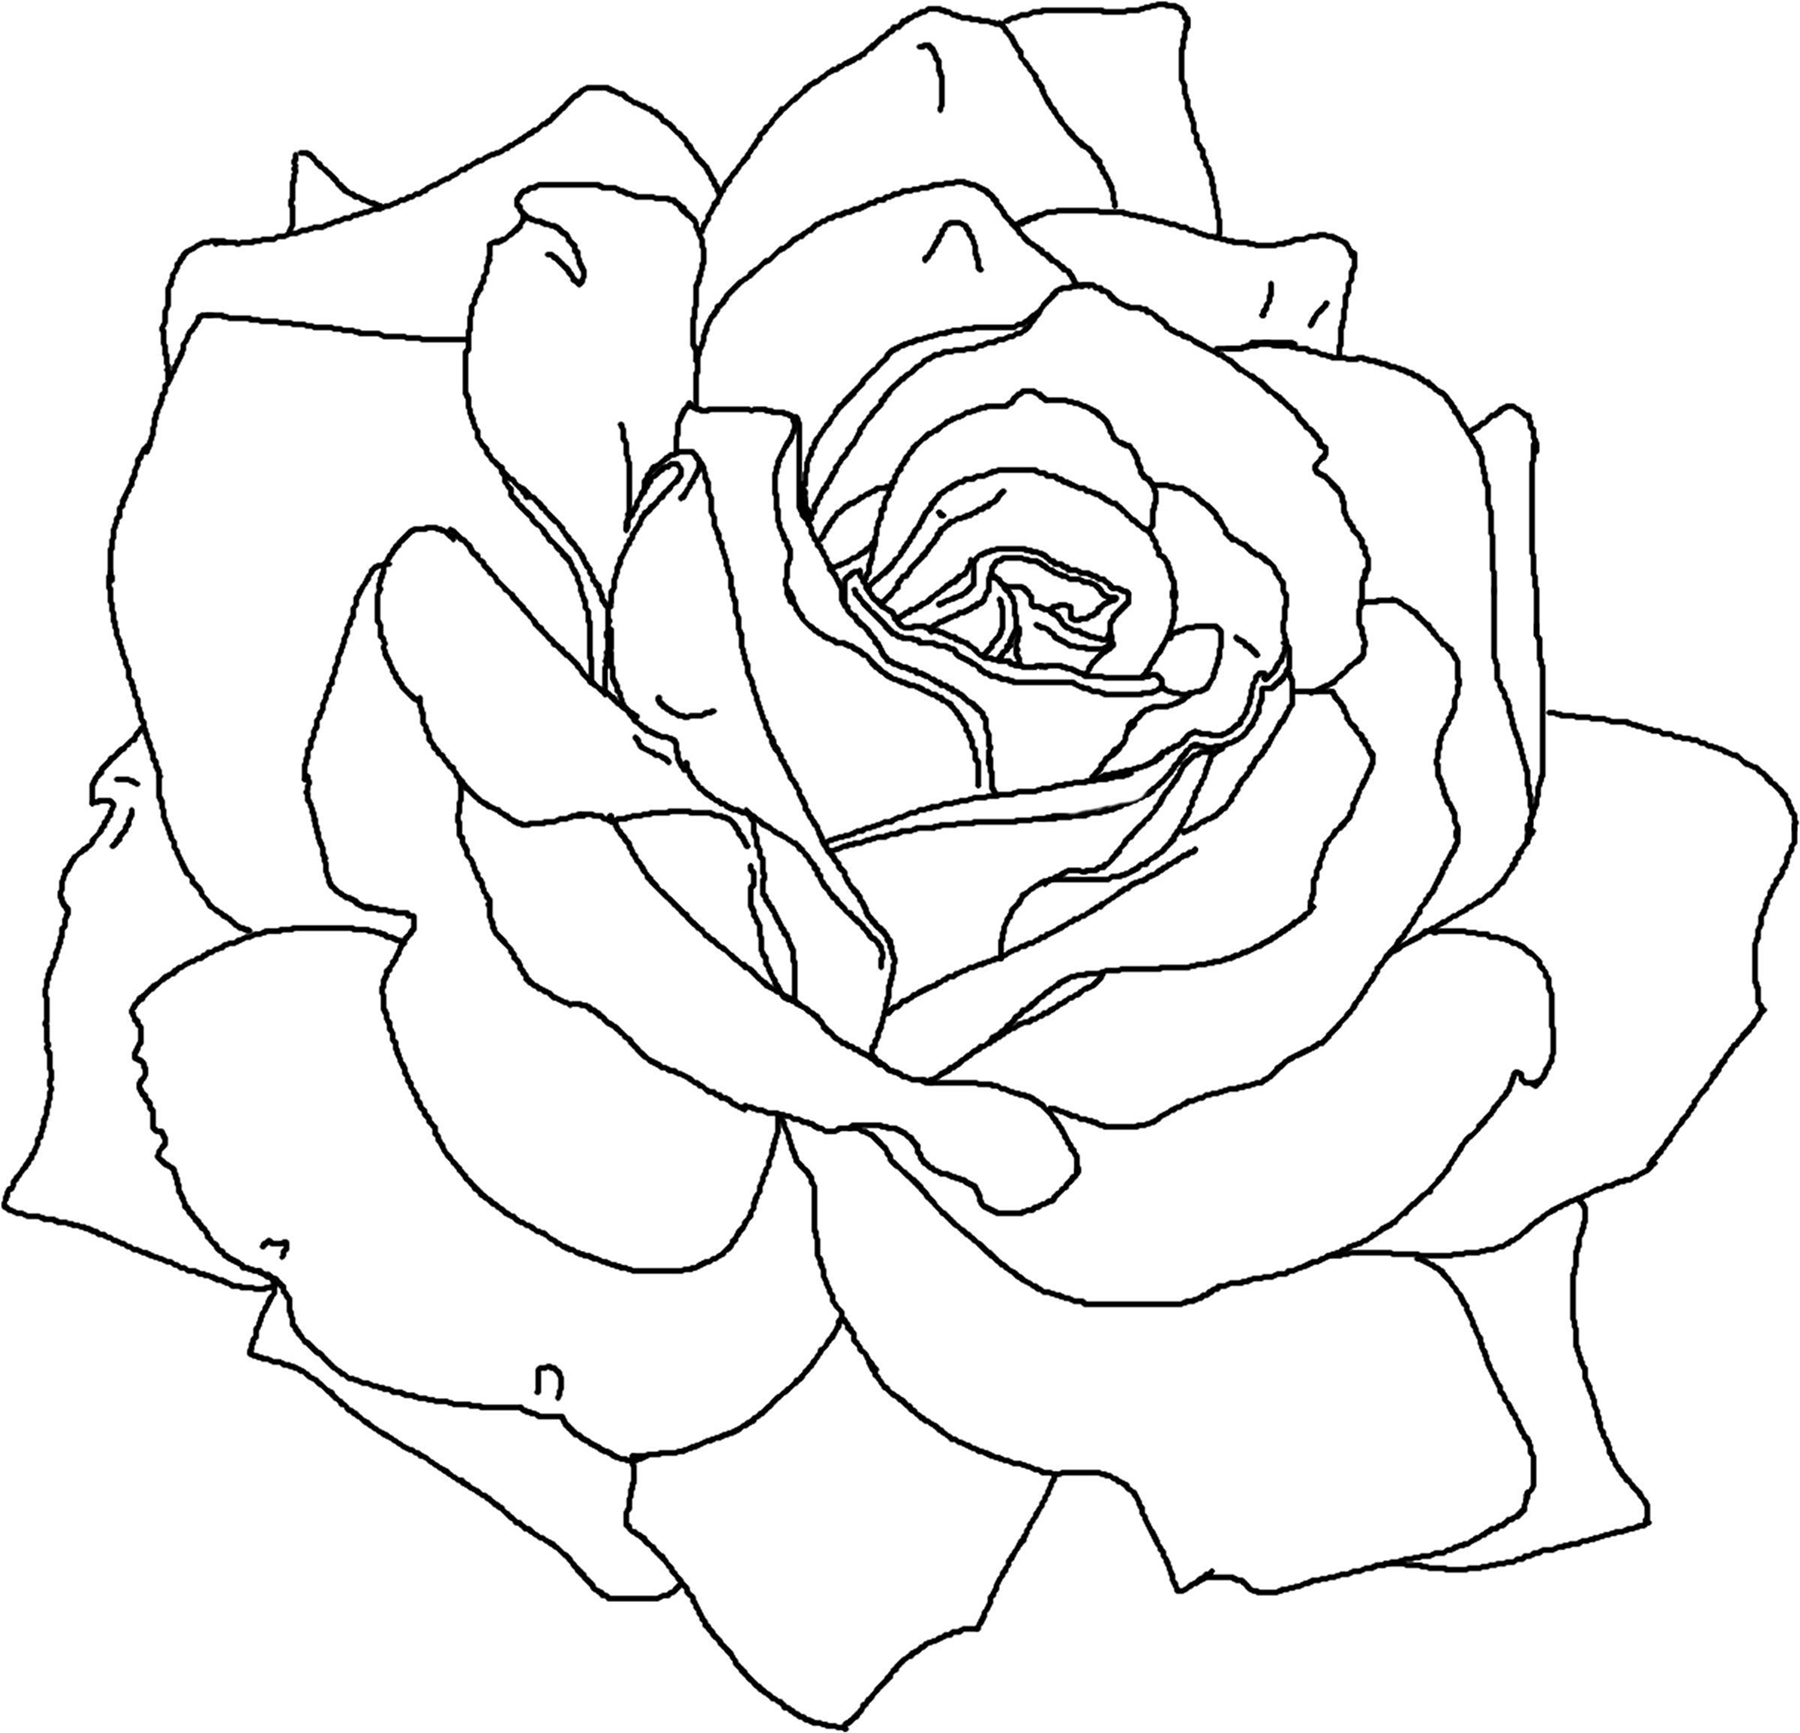 printable flowers to color flower13 flowers coloring pages coloring page book for kids flowers to printable color